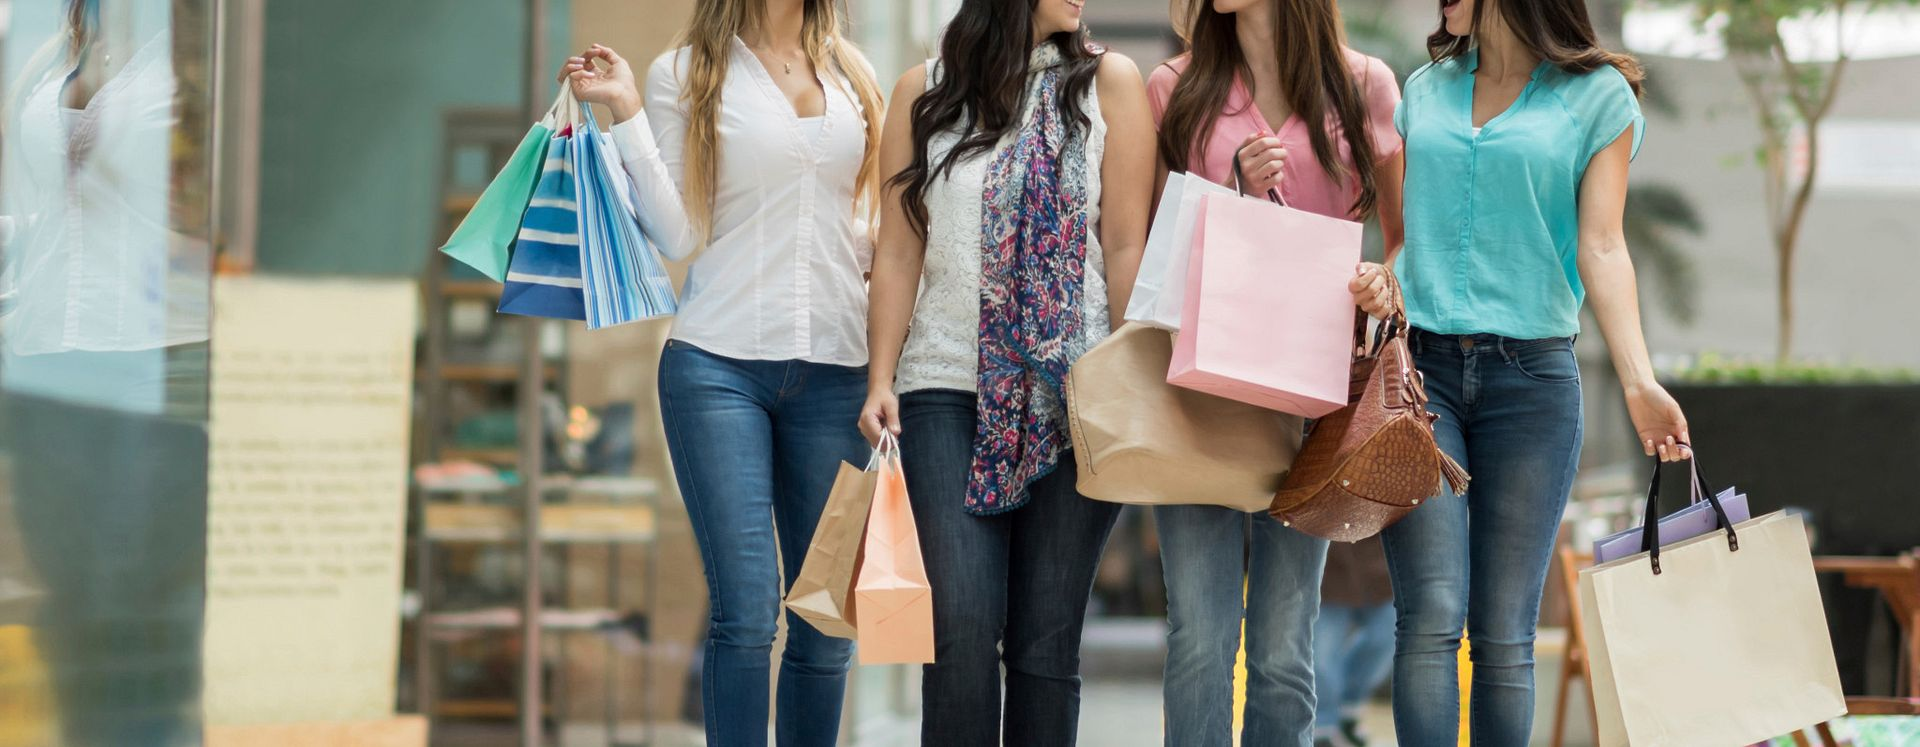 Women walking together holding shopping bags